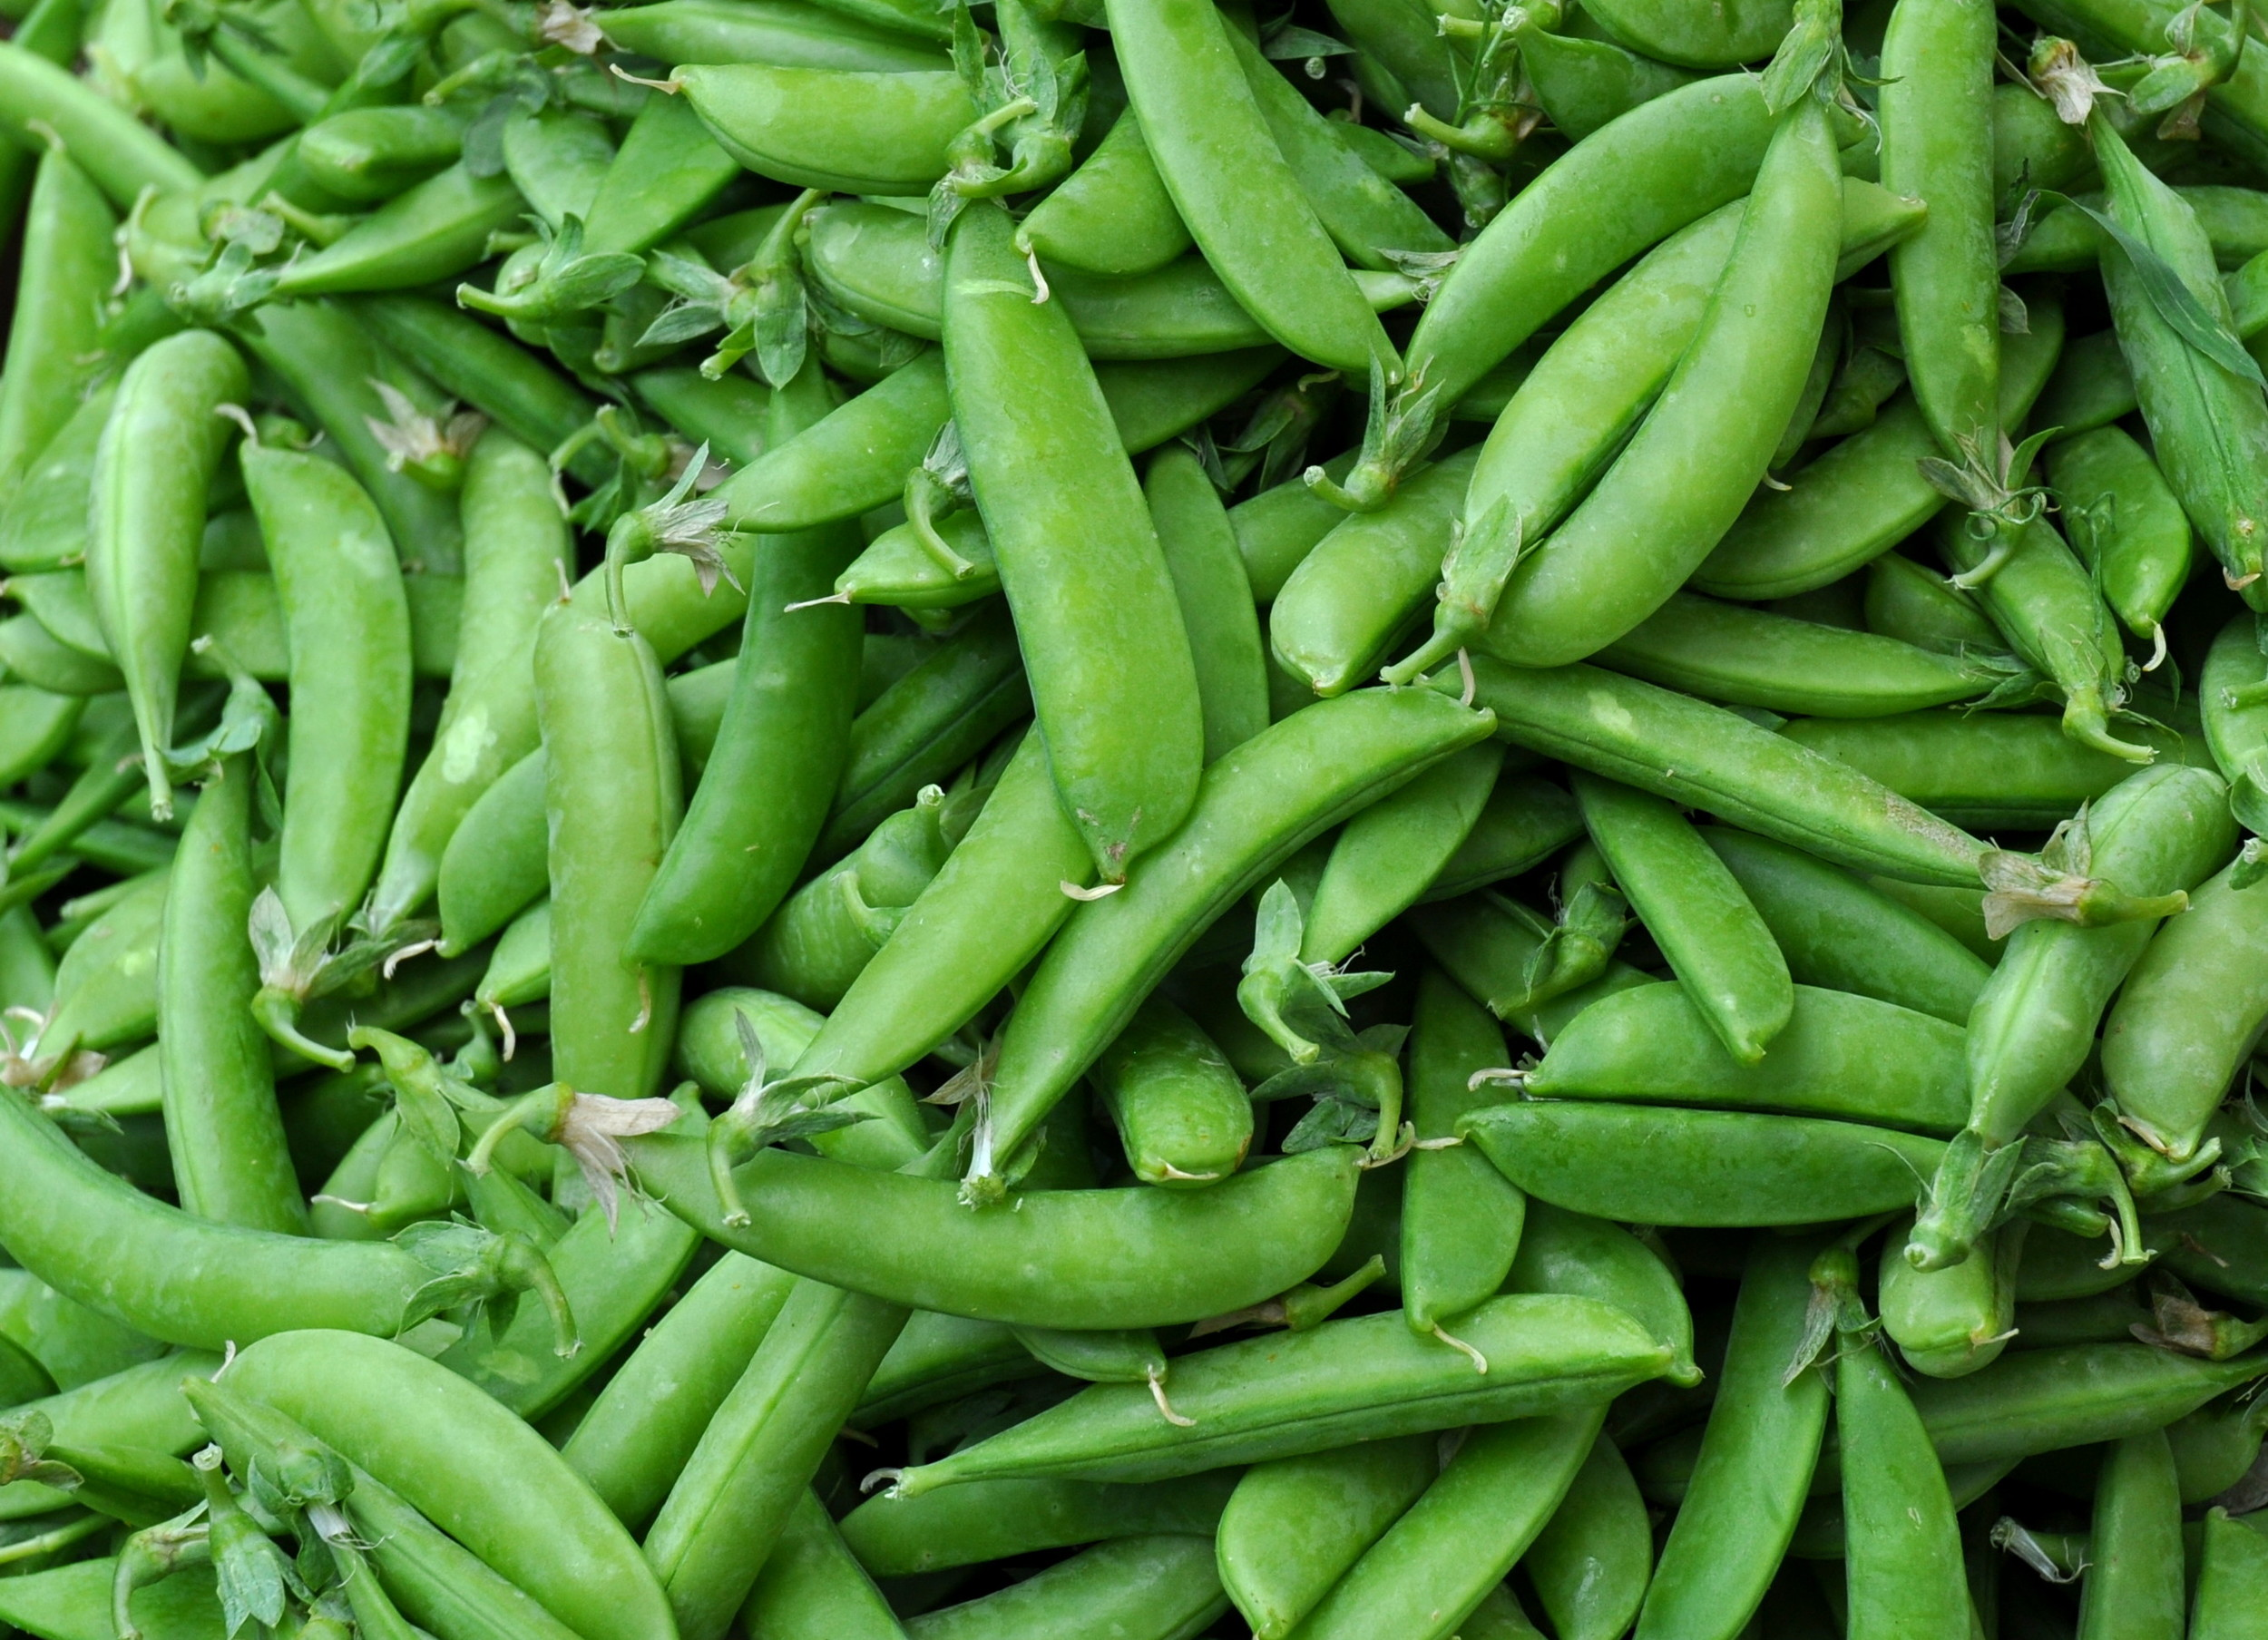 Sugar snap peas from Alvarez Organic Farms. Photo copyright 2014 by Zachary D. Lyons.